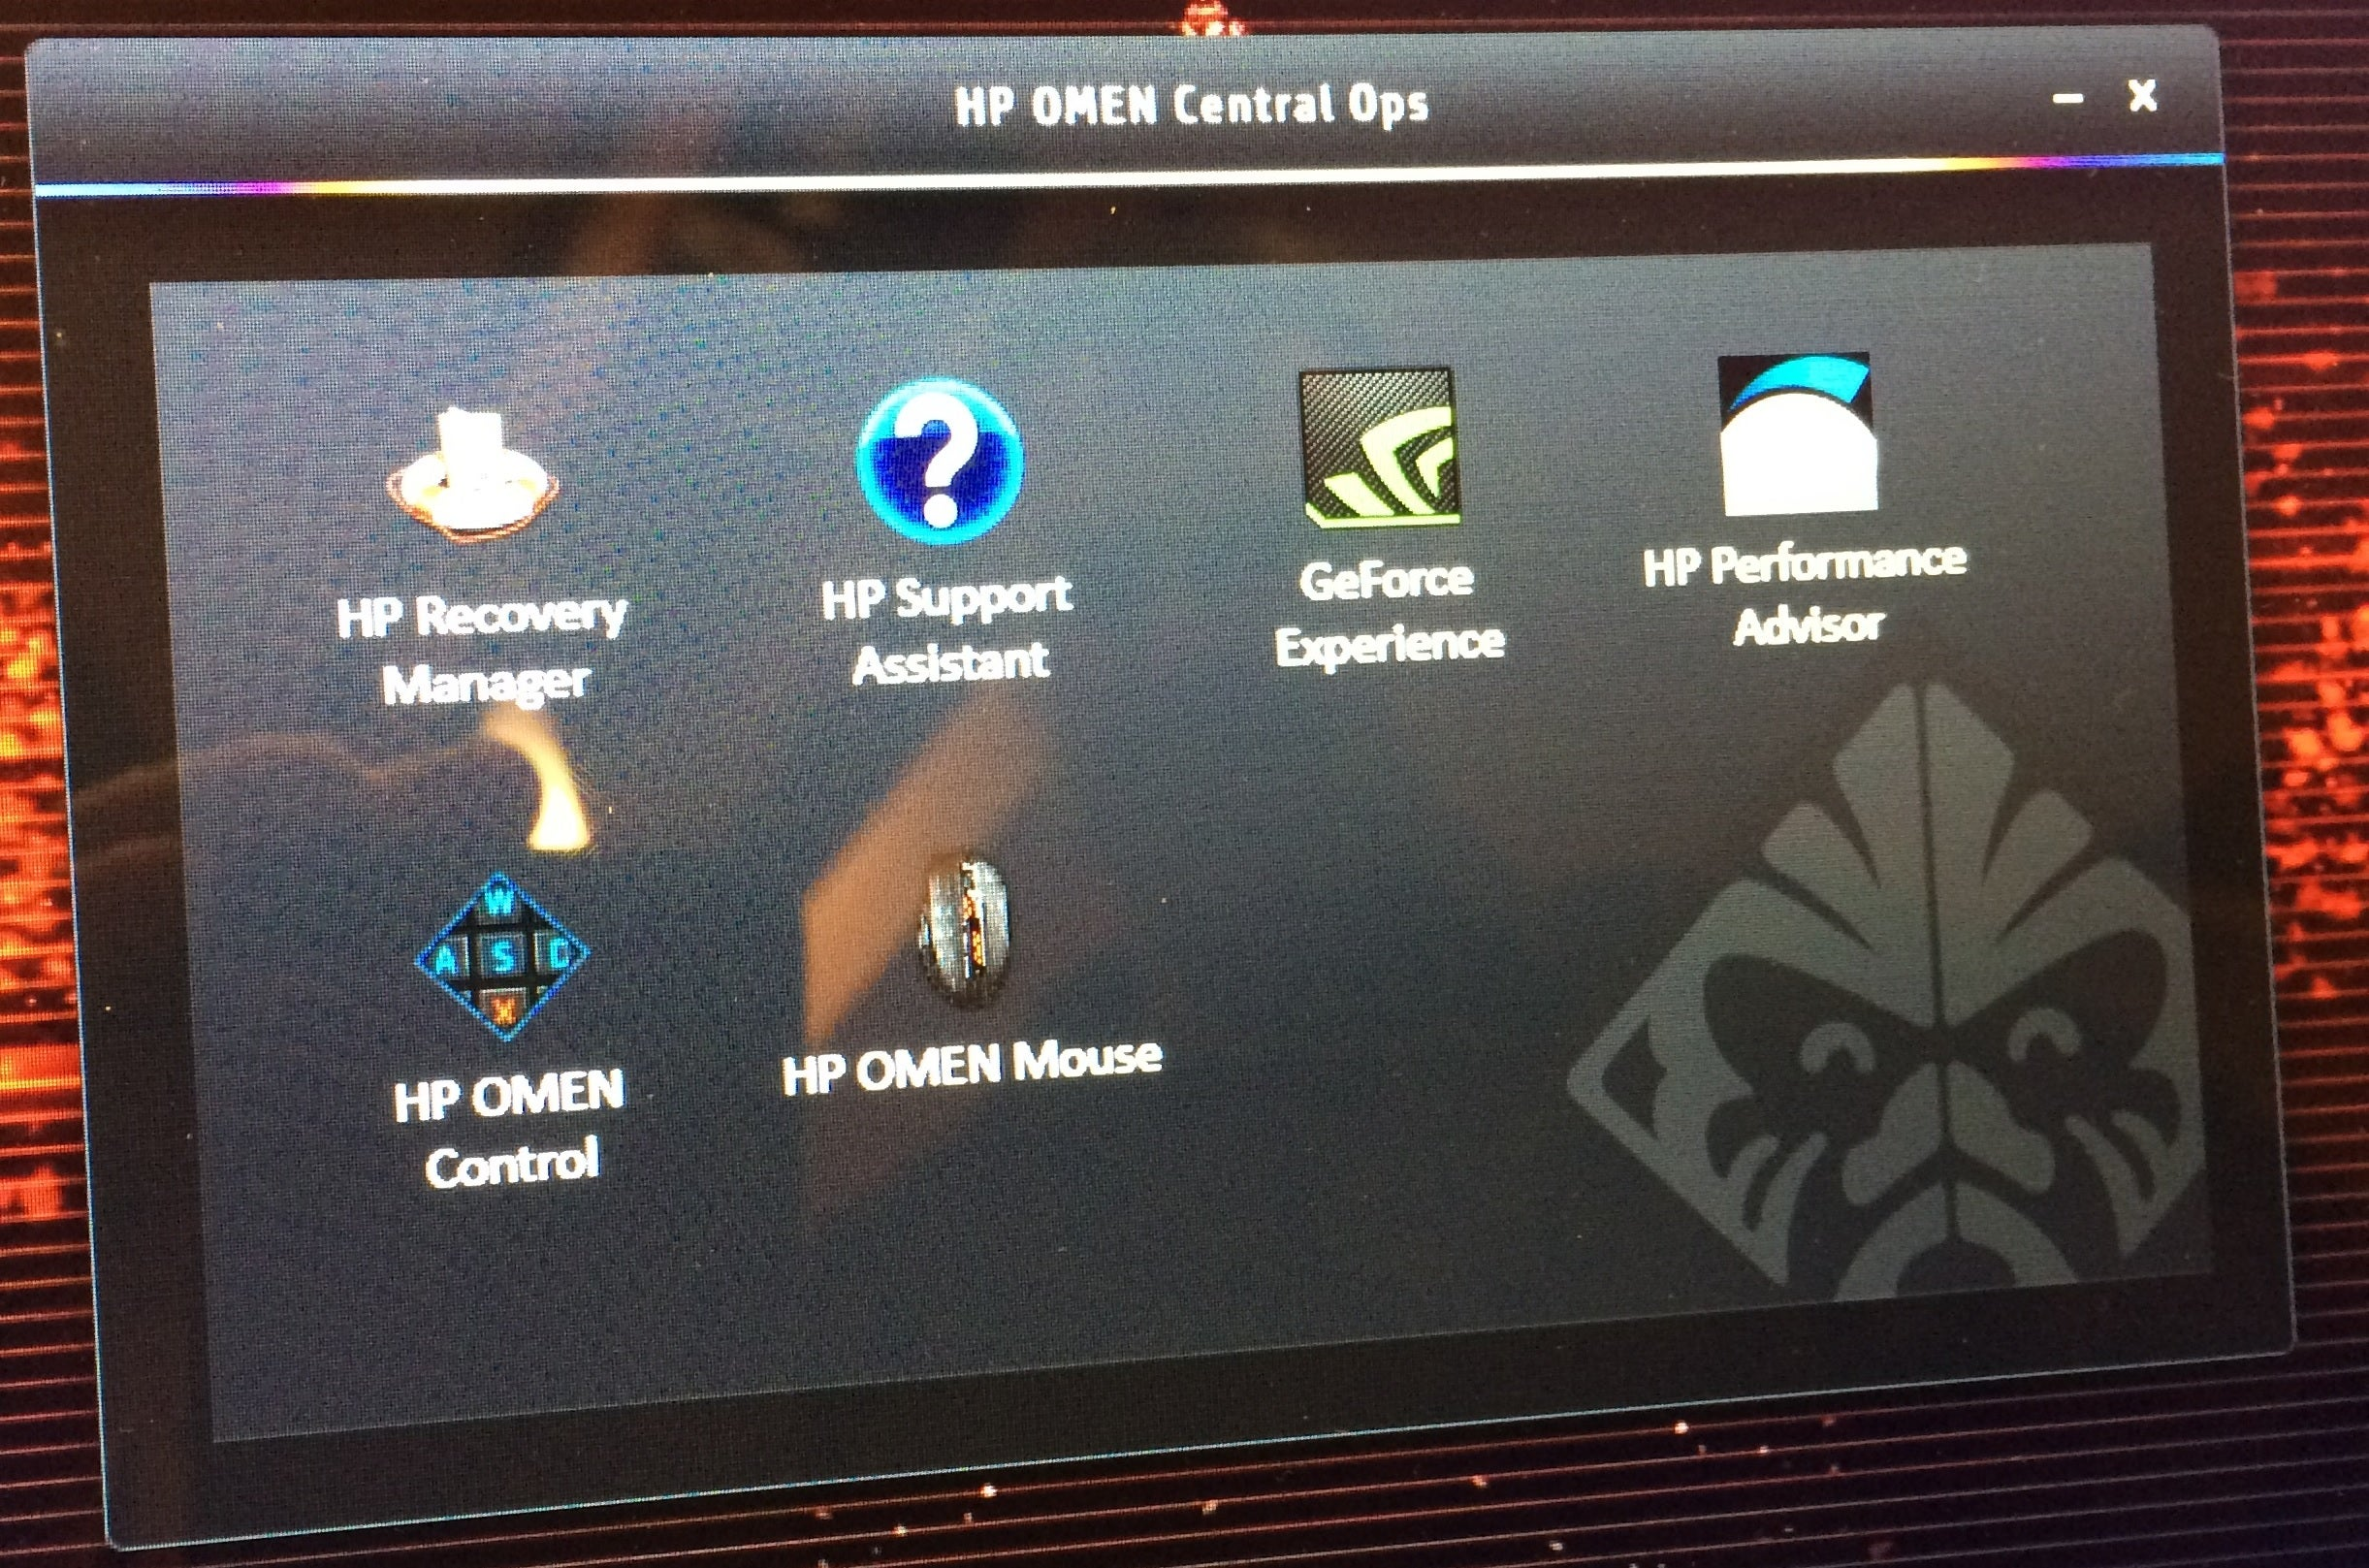 HP Omen gaming laptops with core i7 and Nvidia GTX 860M start at